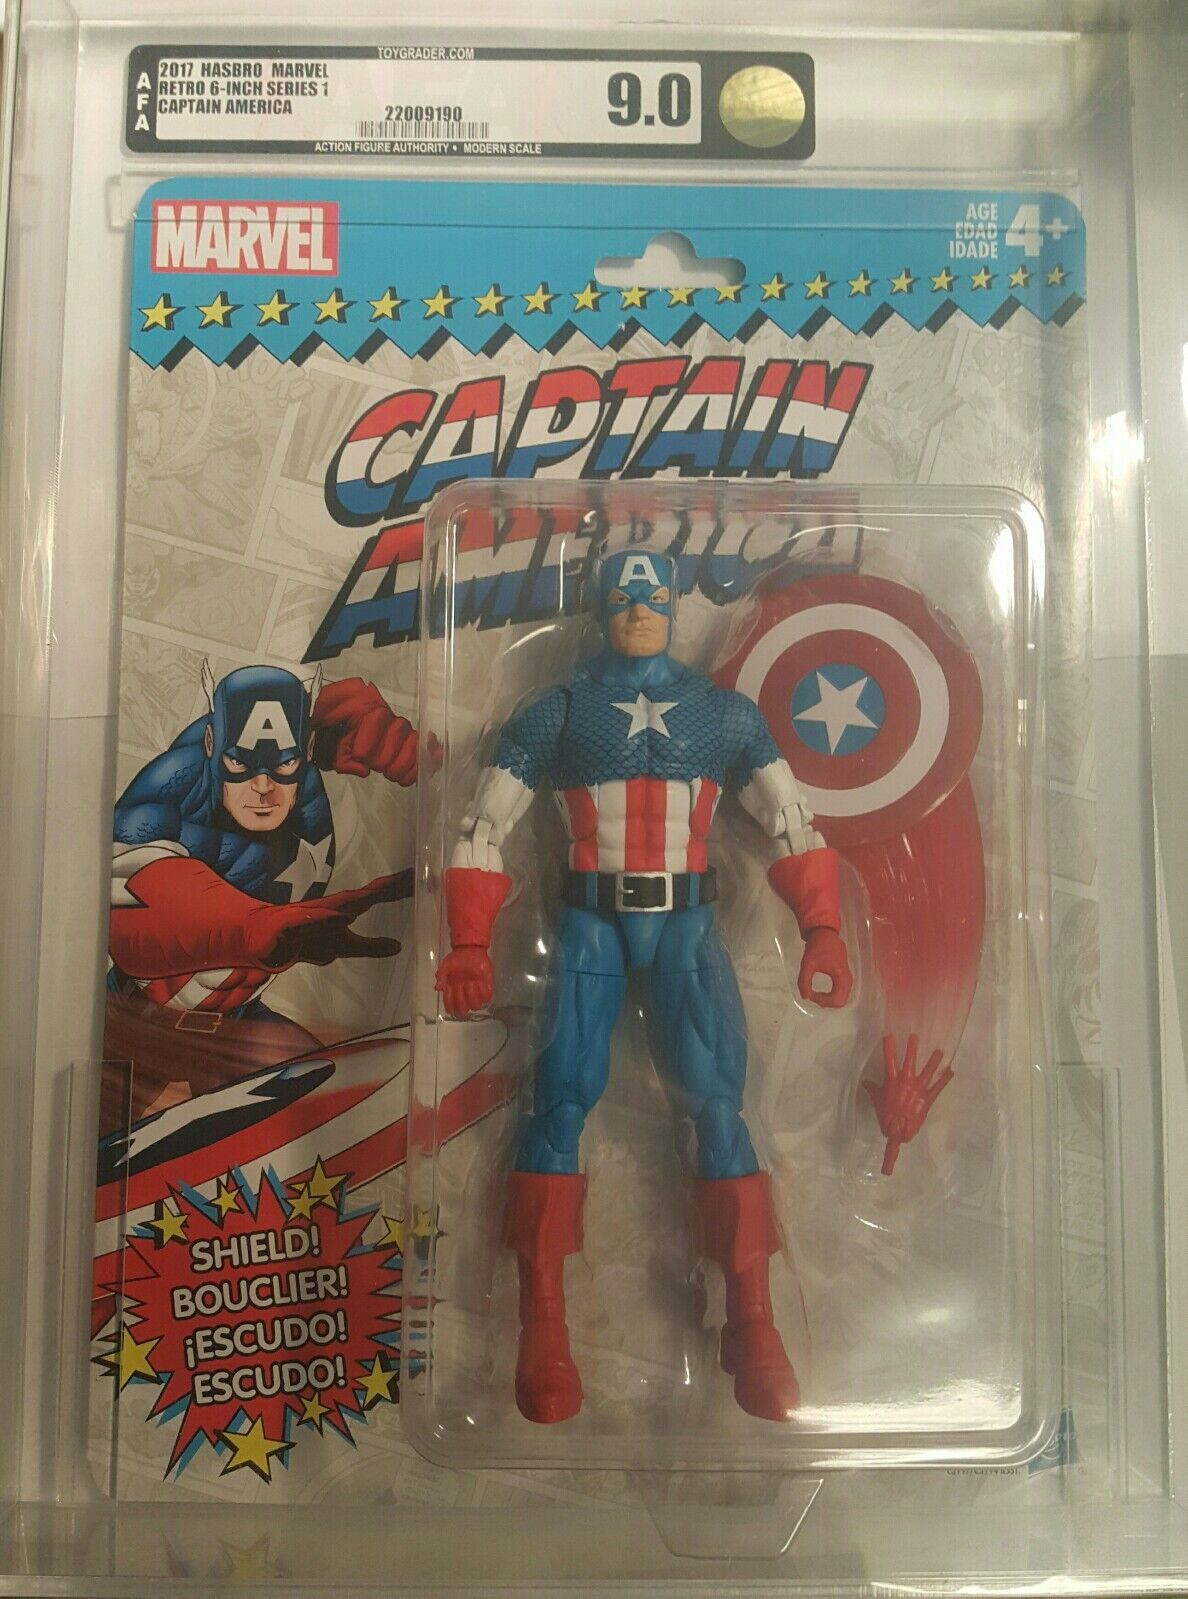 2017 HASBRO MARVEL RETRO SERIES 1 CAPTAIN AMERICA AFA 9.0 gold